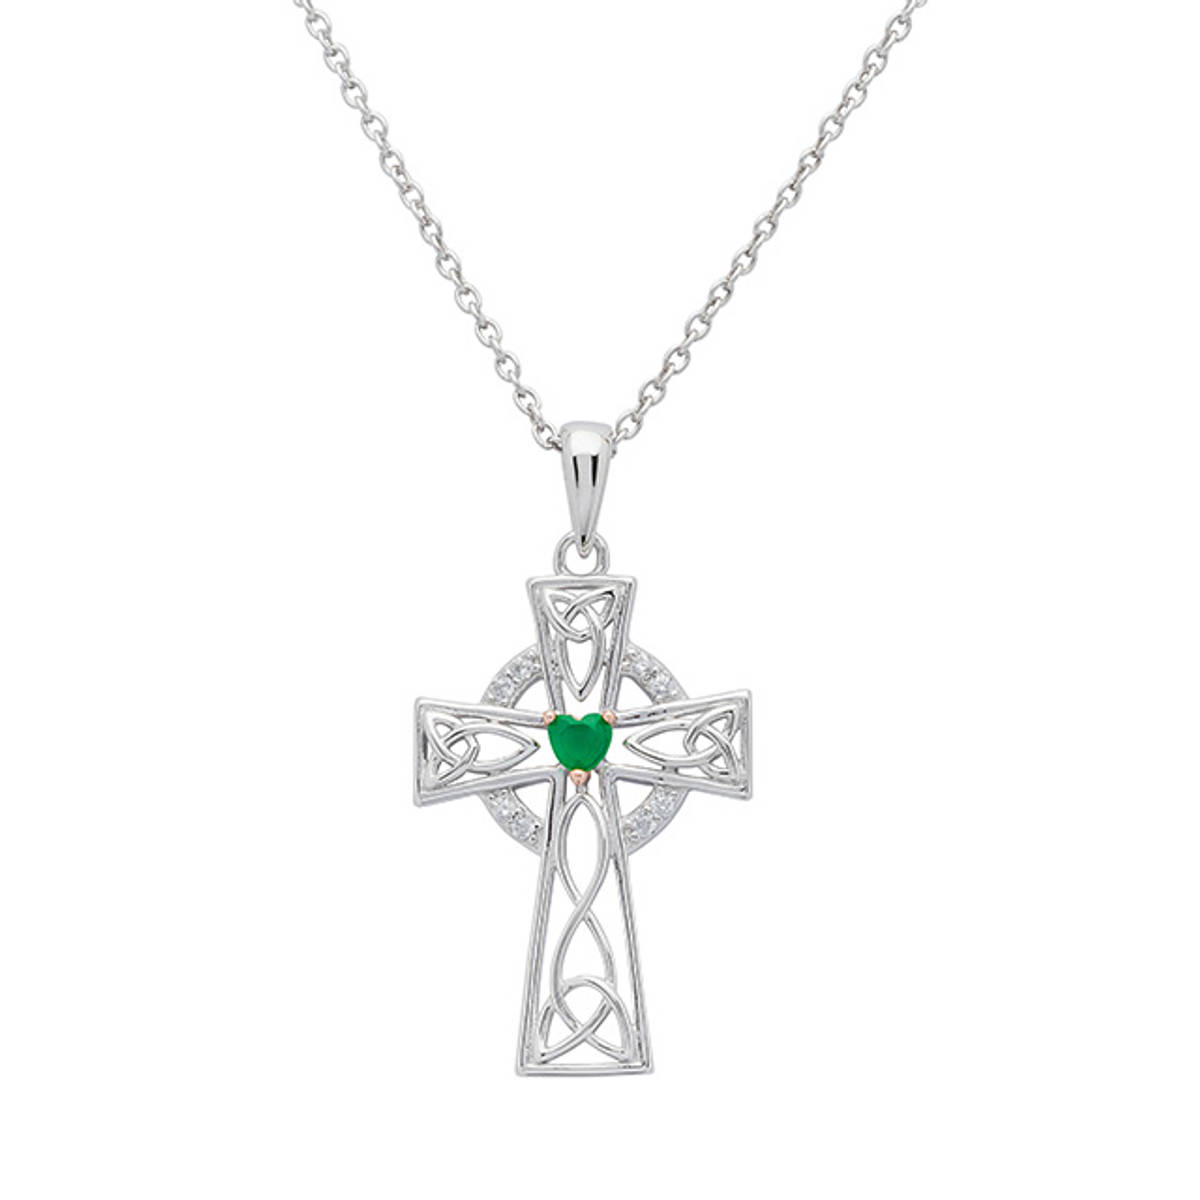 Sterling Silver Celtic Cross with Heart Shaped Green Agate.   An exquisite example of the Celtic cross. This pendant is also embellished with Celtic Knots, rose gold and cubic zirconia.   Size: 21.5mm